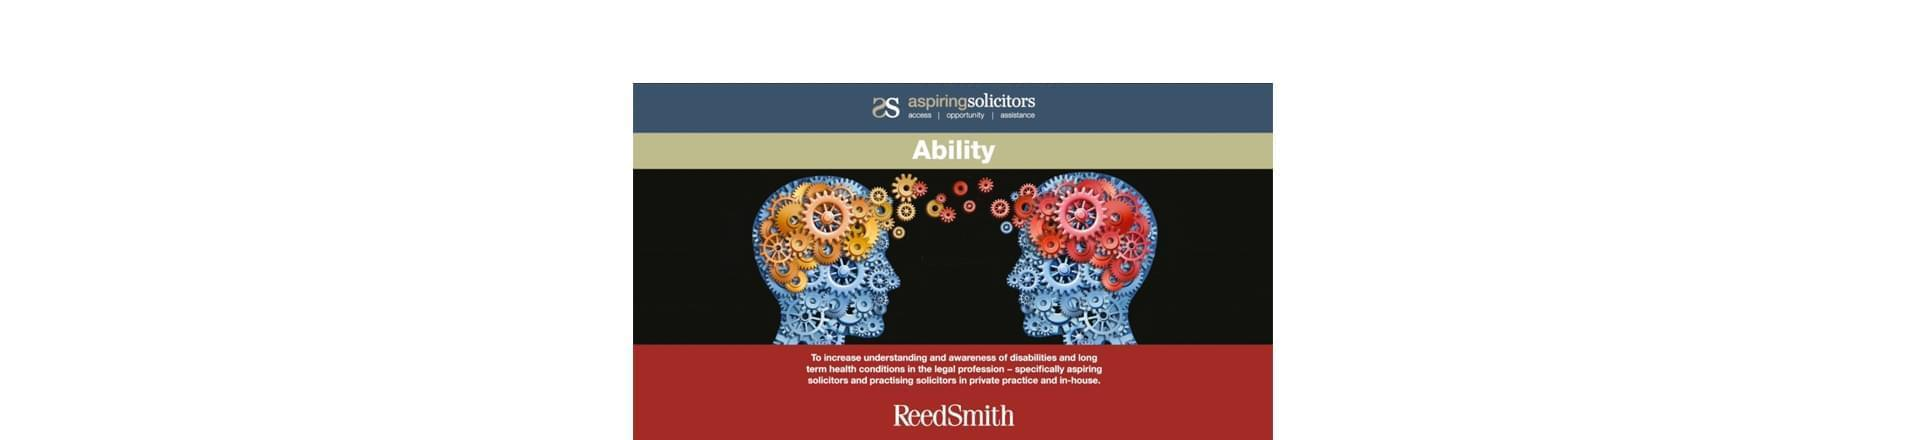 the Aspiring Solicitors logo with the word 'Ability' and an image of two silhouettes of with mechanical workings within their head and the text ' To increase understanding and awareness of disabilities and long-term health conditions in the legal profession- specifically aspiring solicitors and practicing solicitors in private practice and in-house'